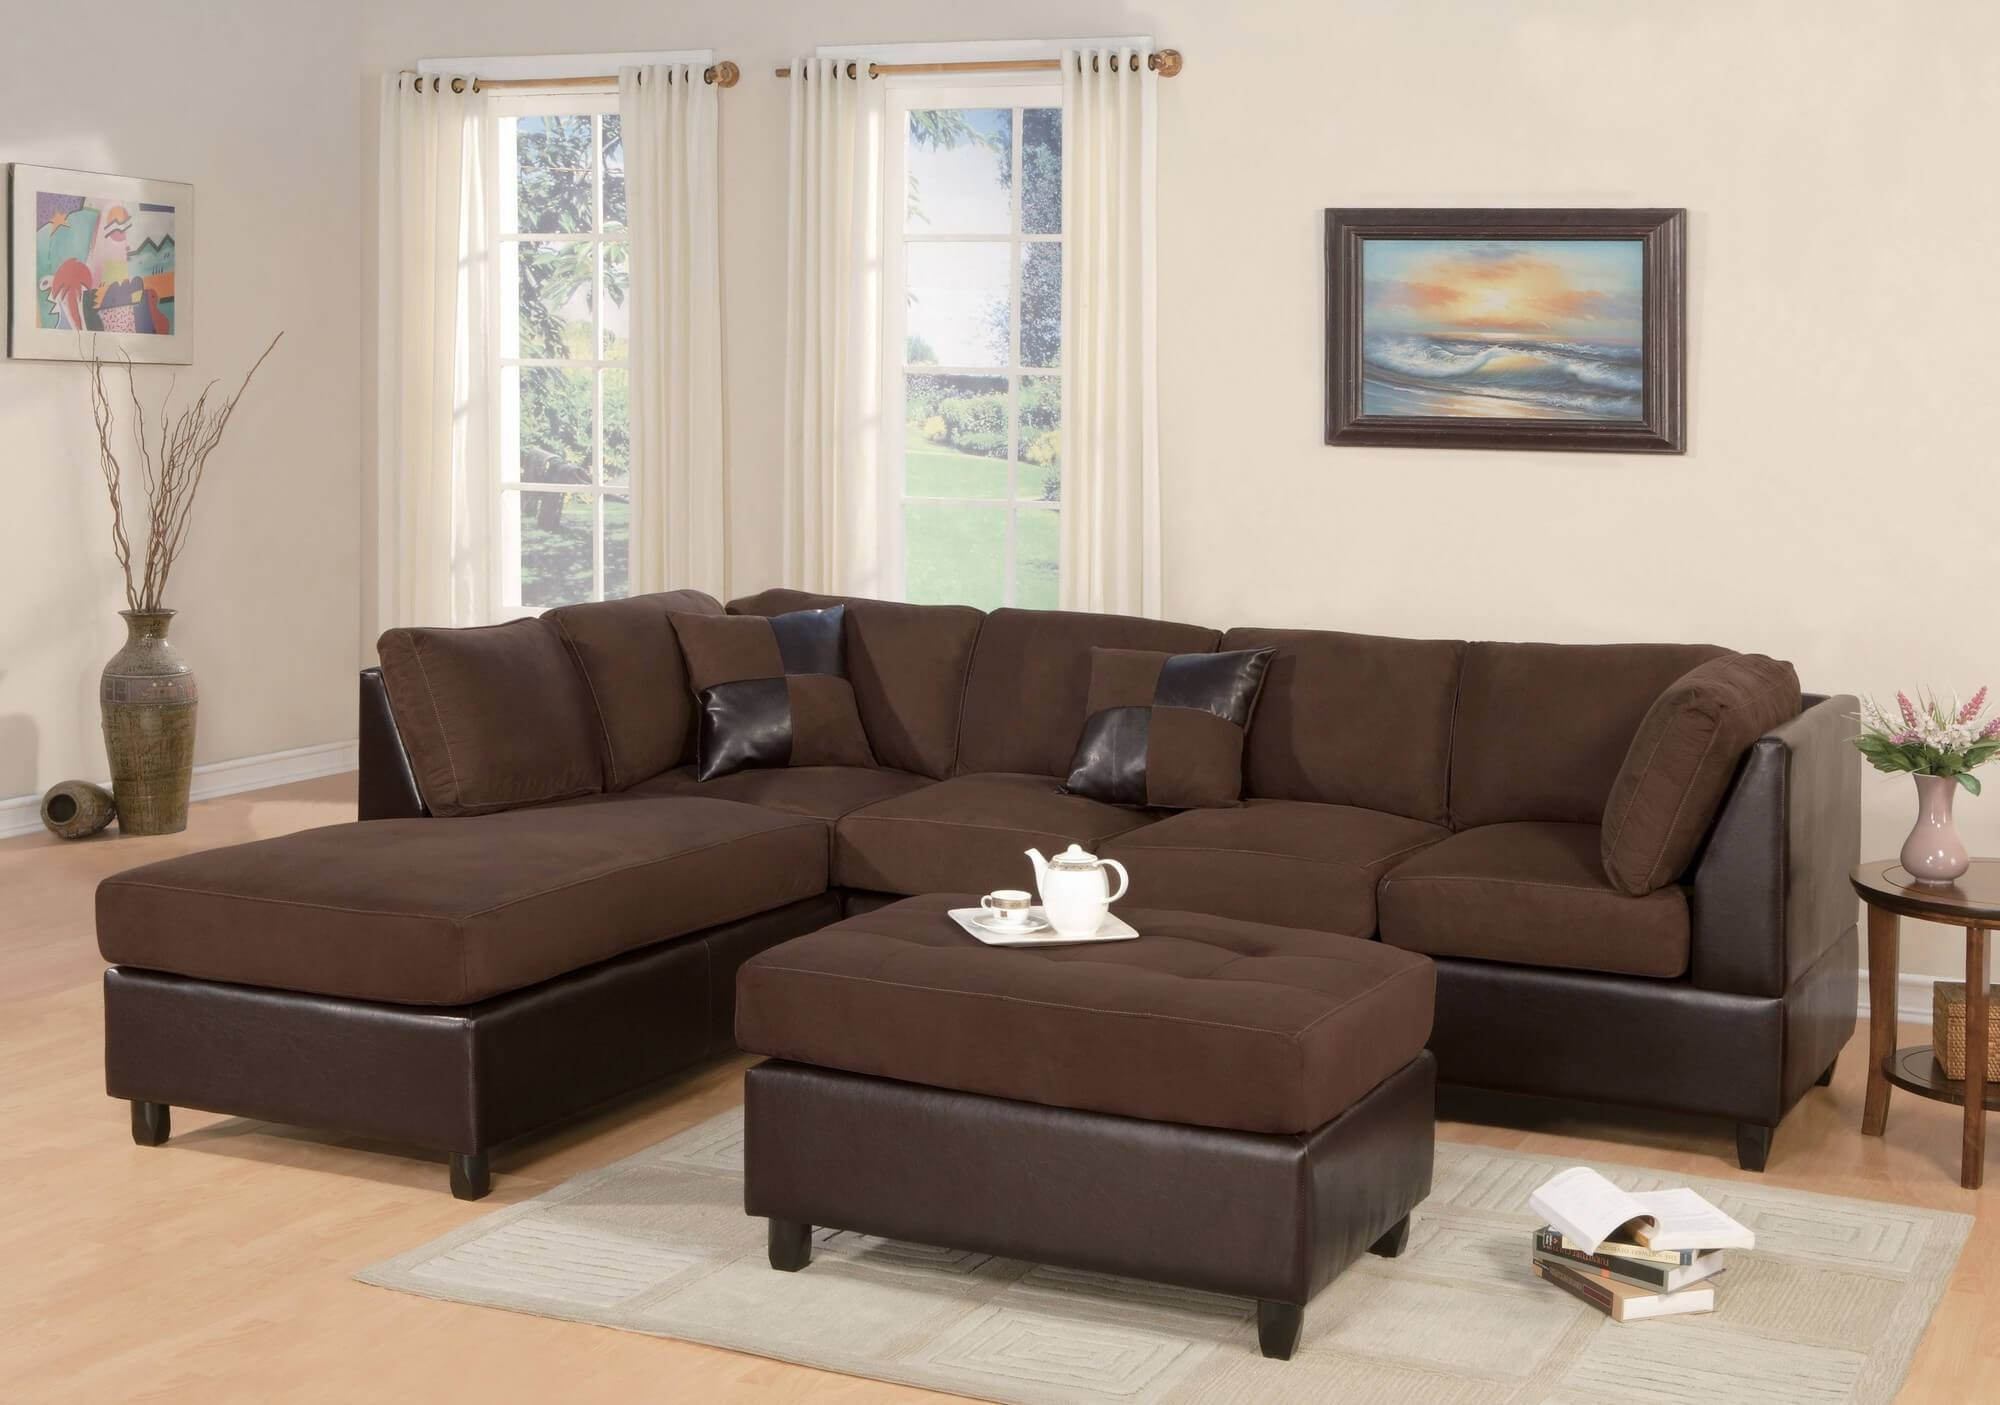 12 Photo Of Chocolate Brown Sectional Sofa with regard to Chocolate Brown Sectional Sofa (Image 2 of 30)